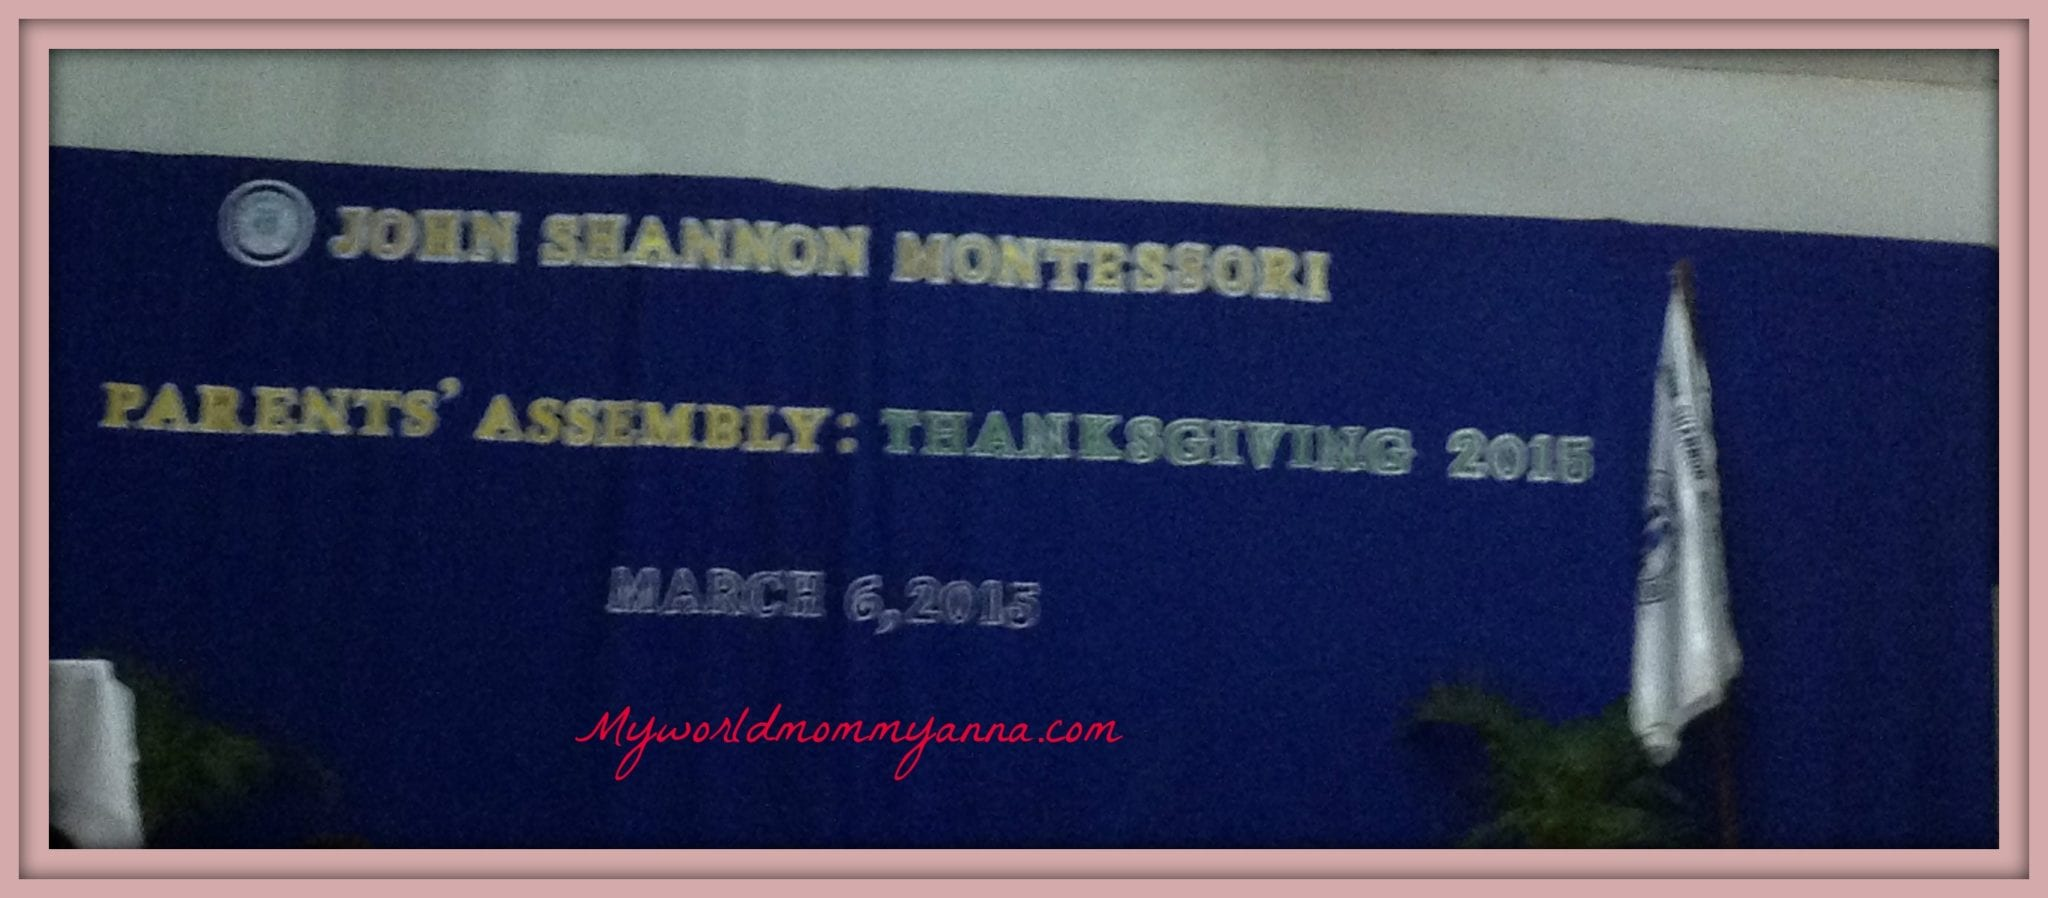 Parent's Assembly and Thanksgiving 2015